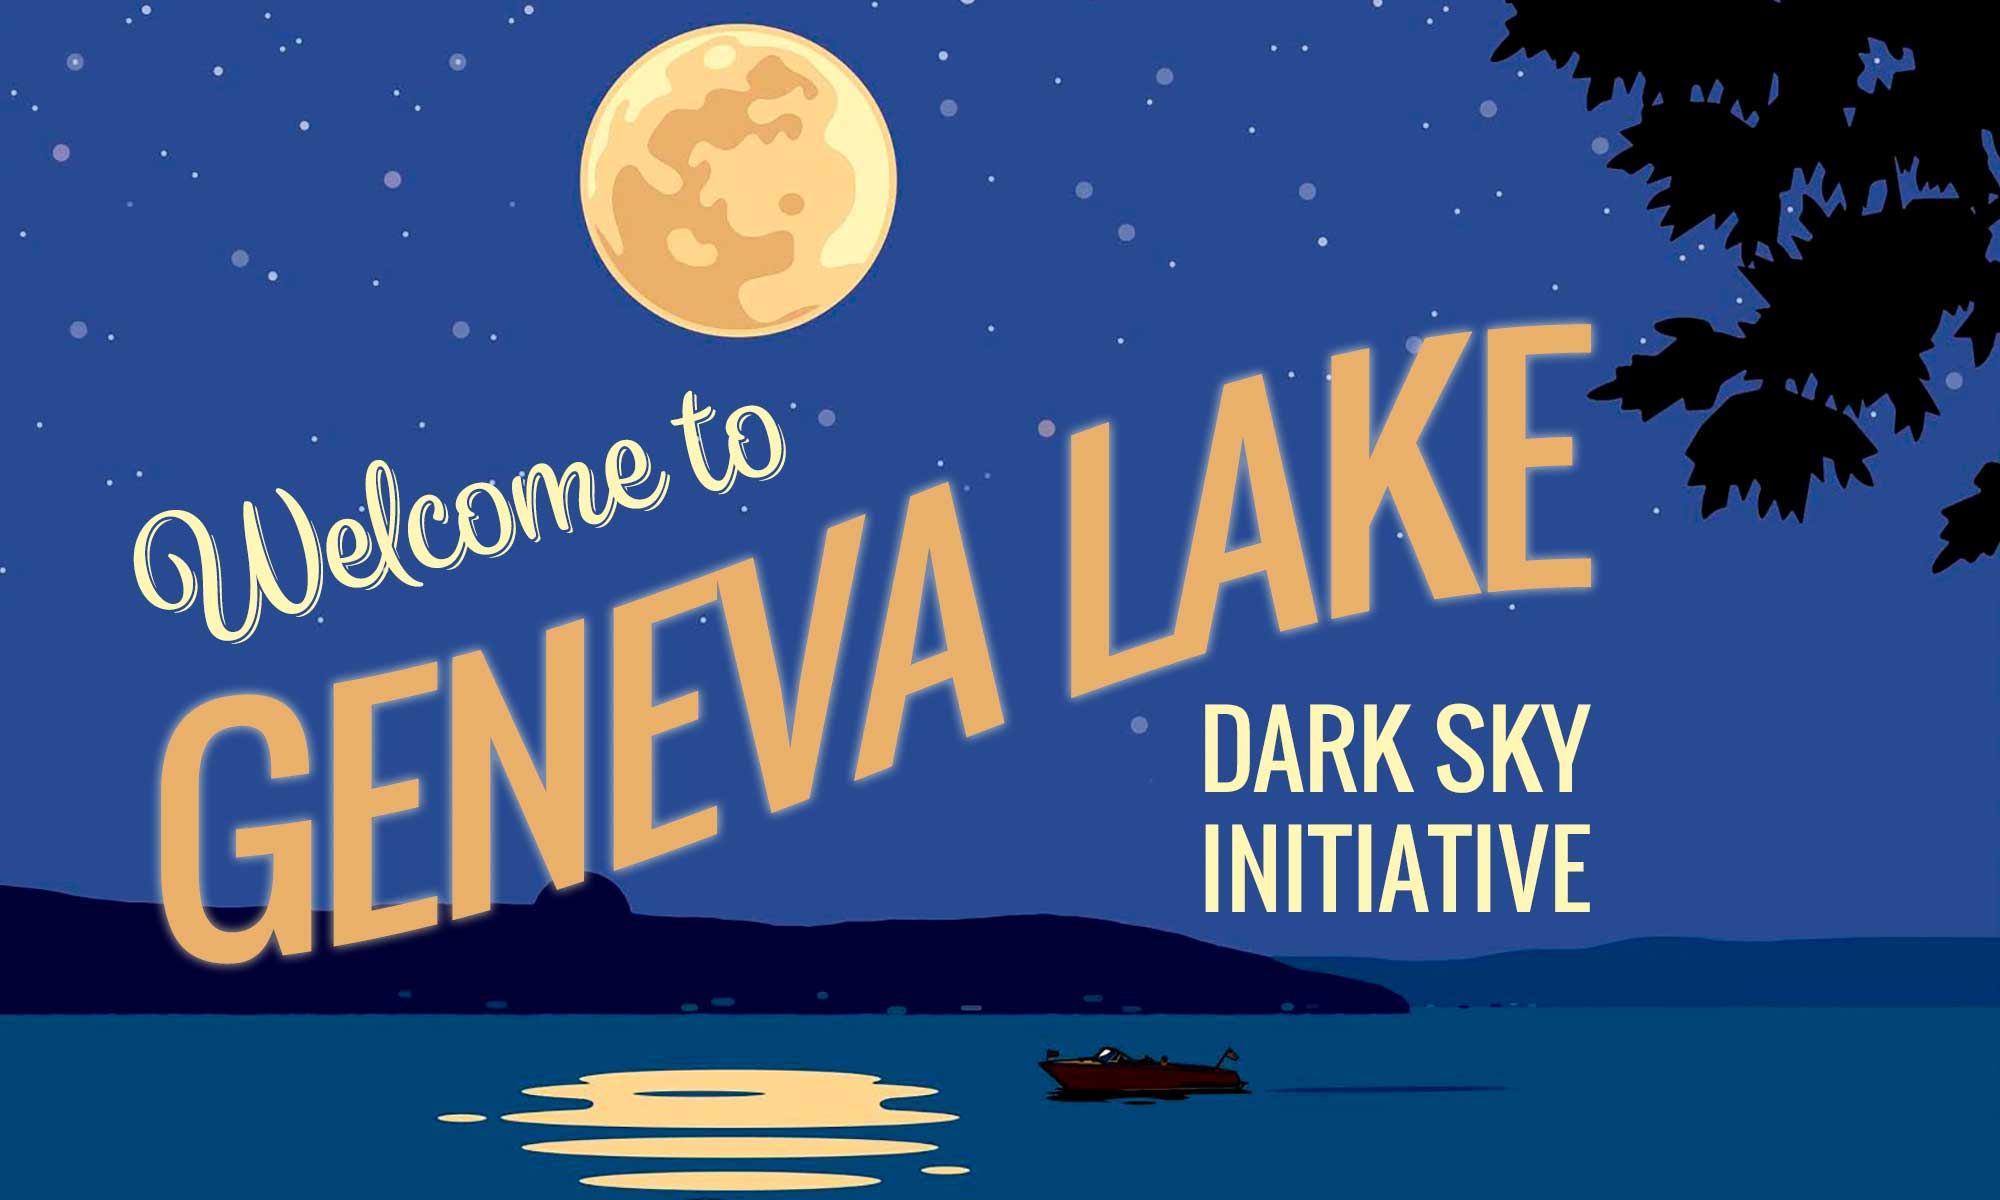 Geneva Lake Dark Sky Initiative